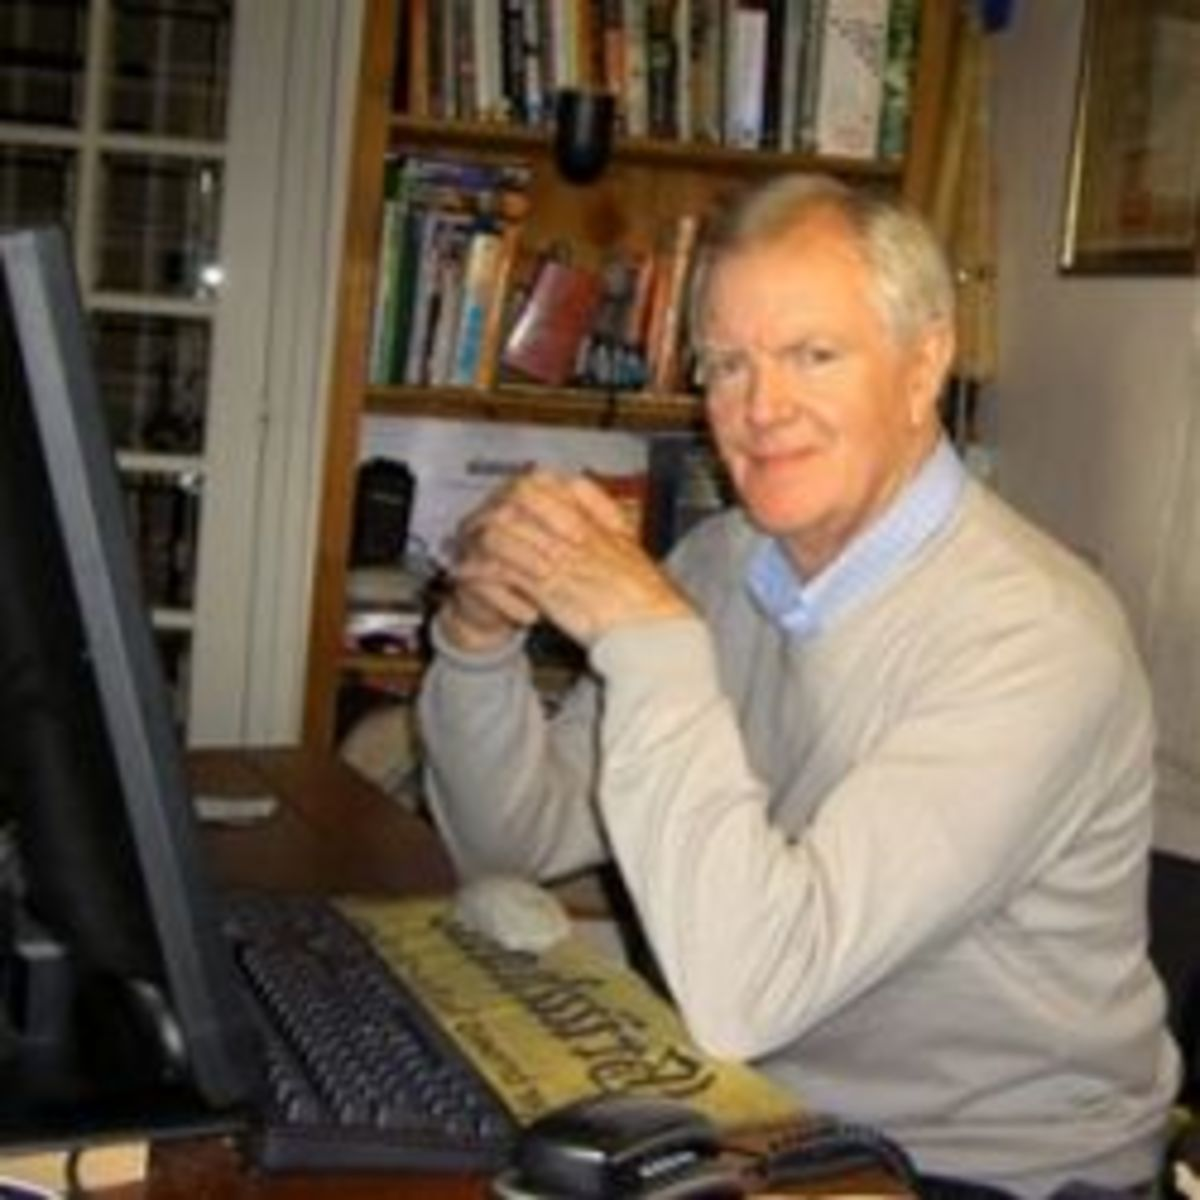 Jonathan Veale, Writer and Author